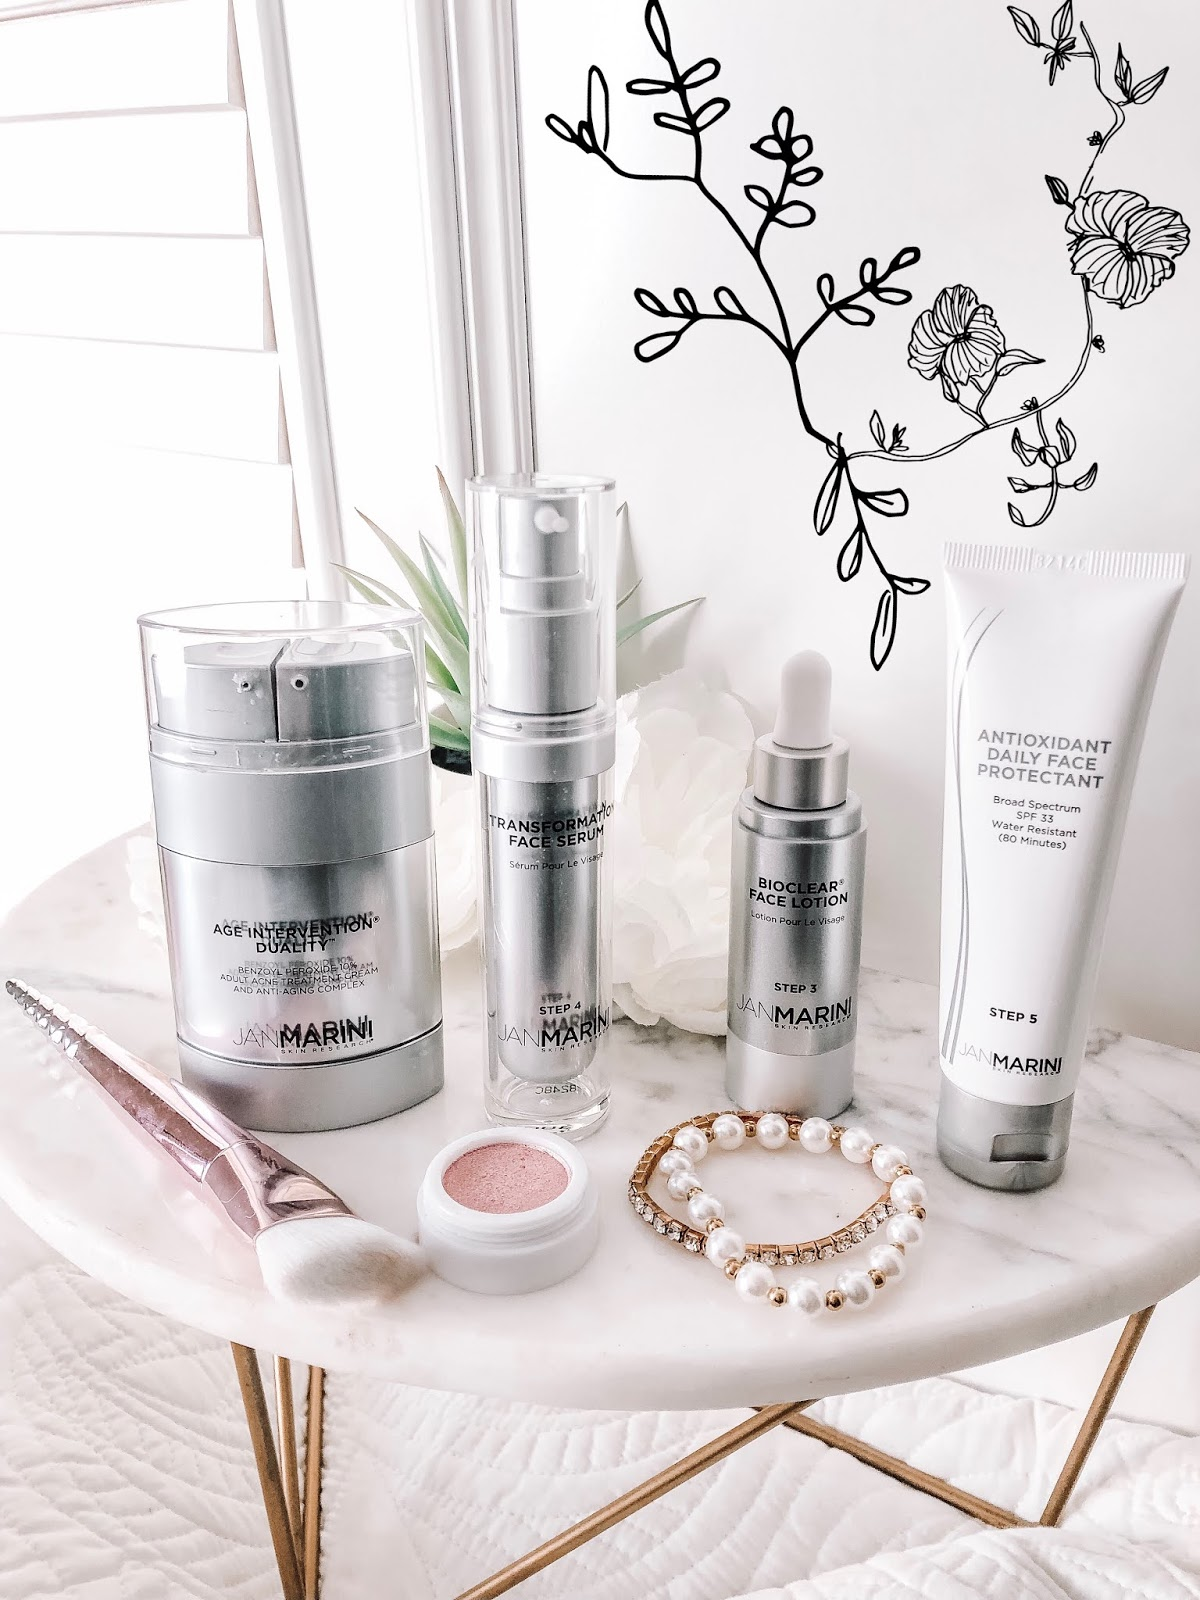 affordable by amanda tampa blogger reviewing skin care products by jan marini